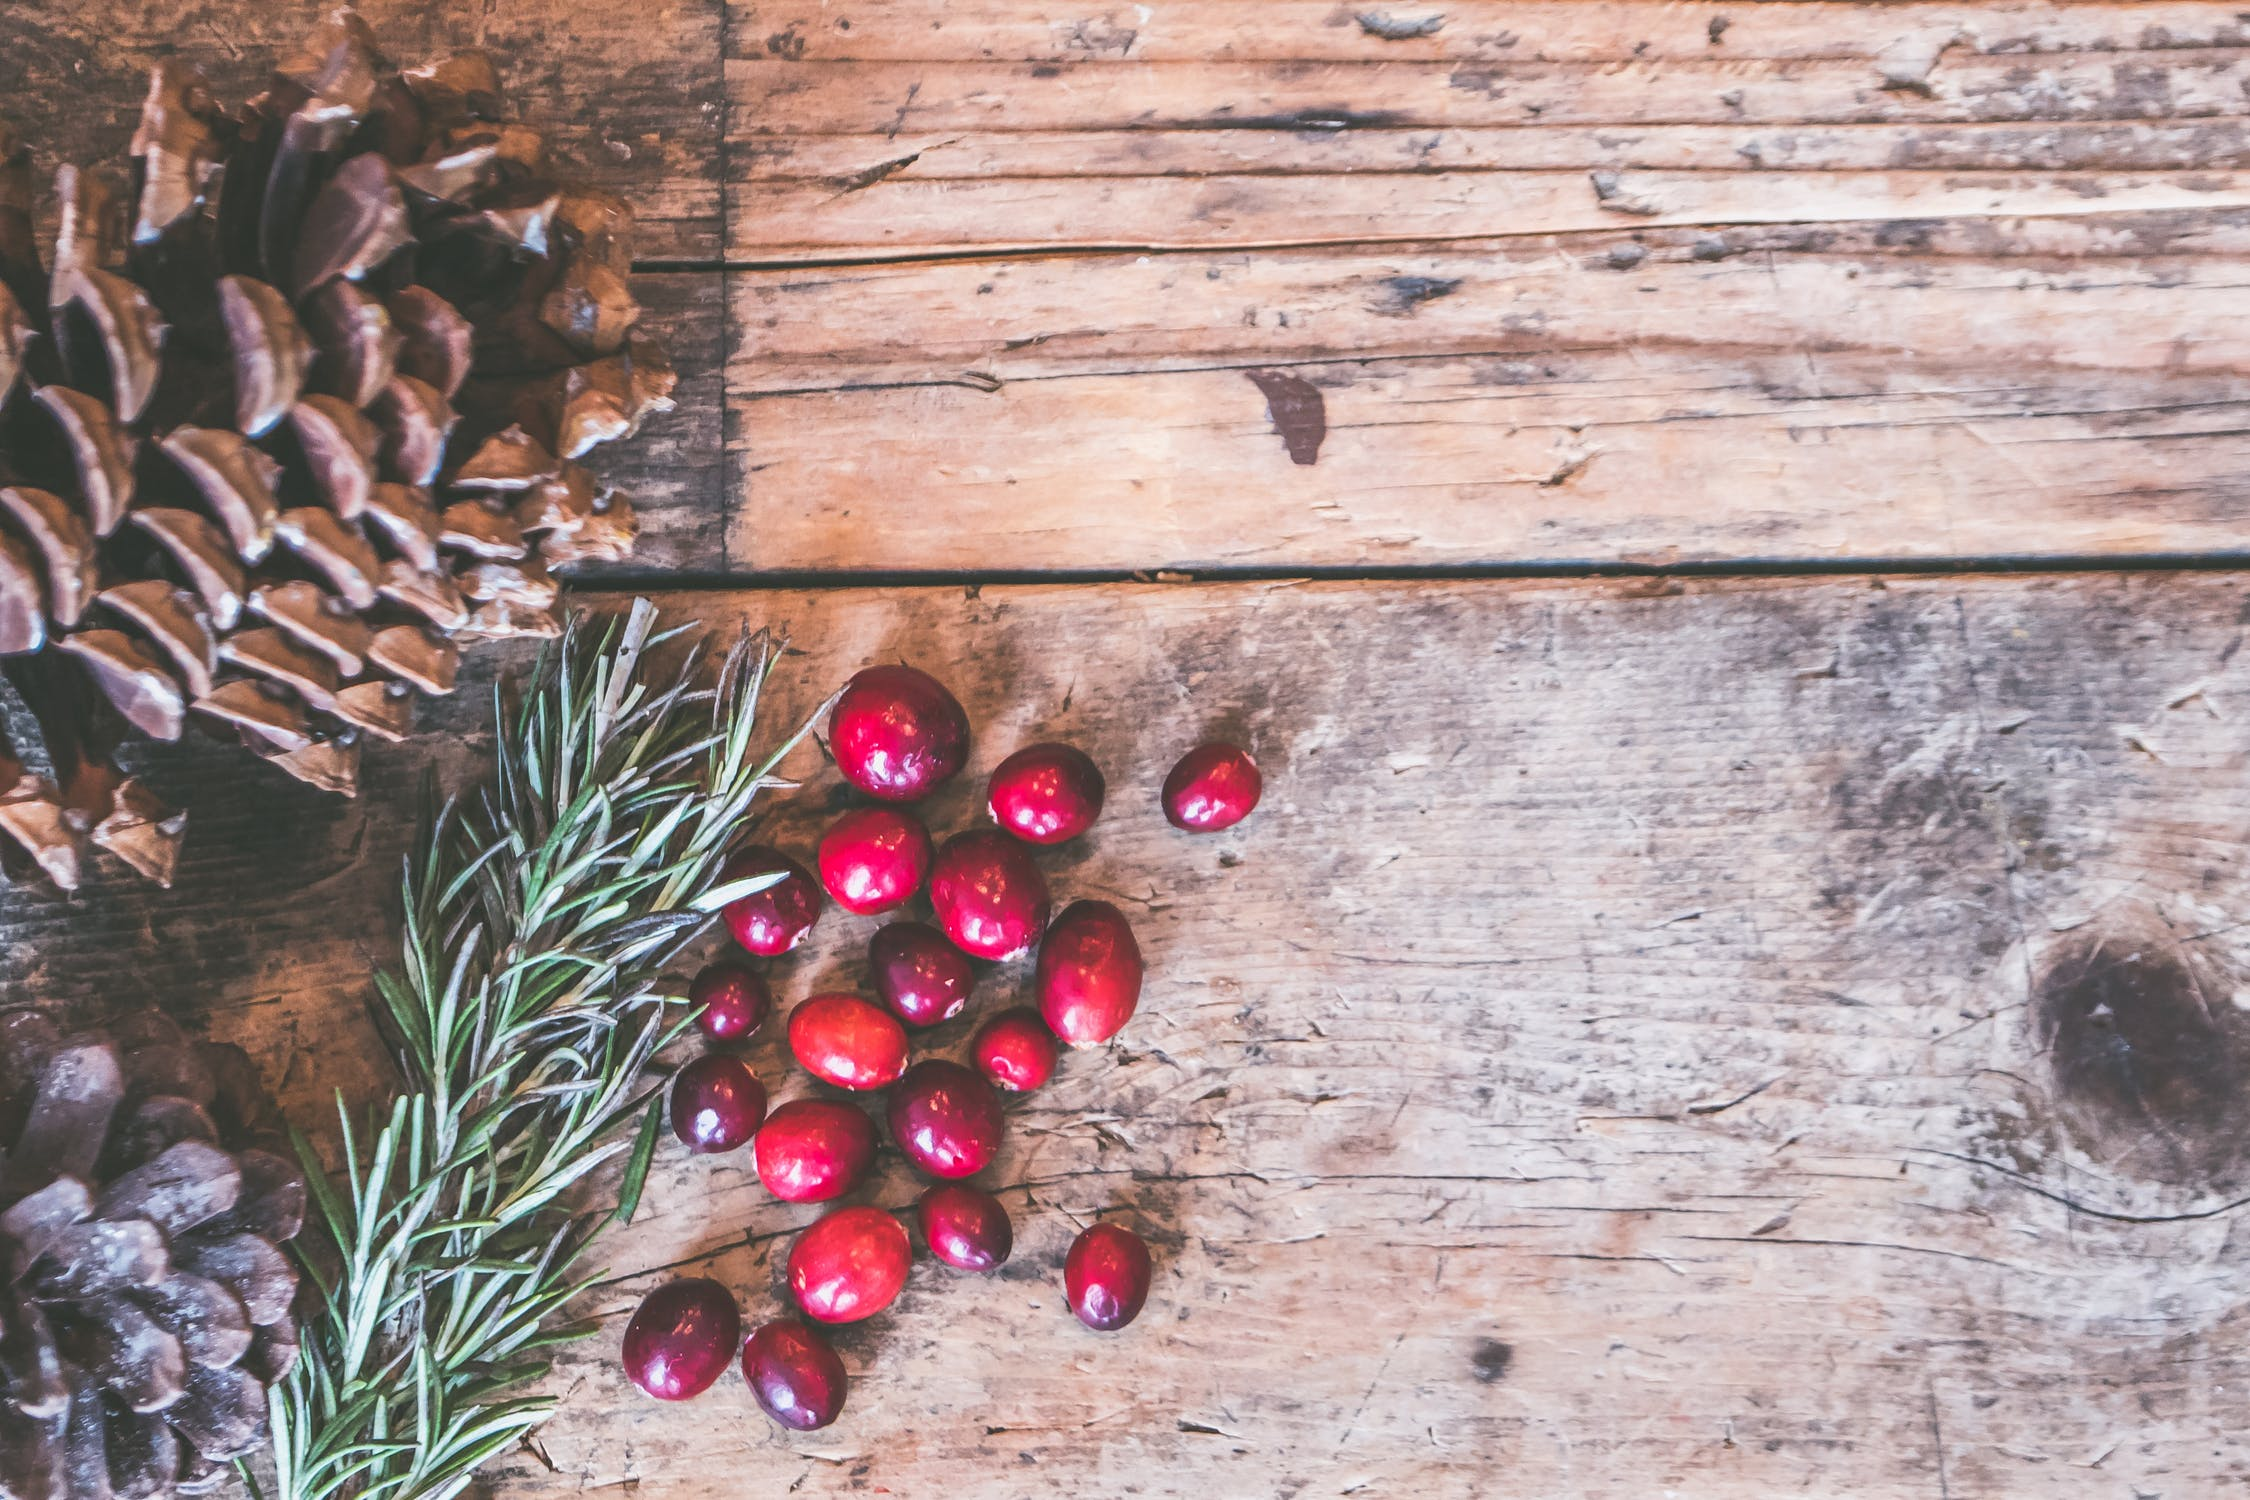 A birdseye view of a wooden table with holly, pomegranate seeds, and a pinecone sitting on it. Photo by pexels user Jessica Lewis. Photo used courtesy of pexels.com.